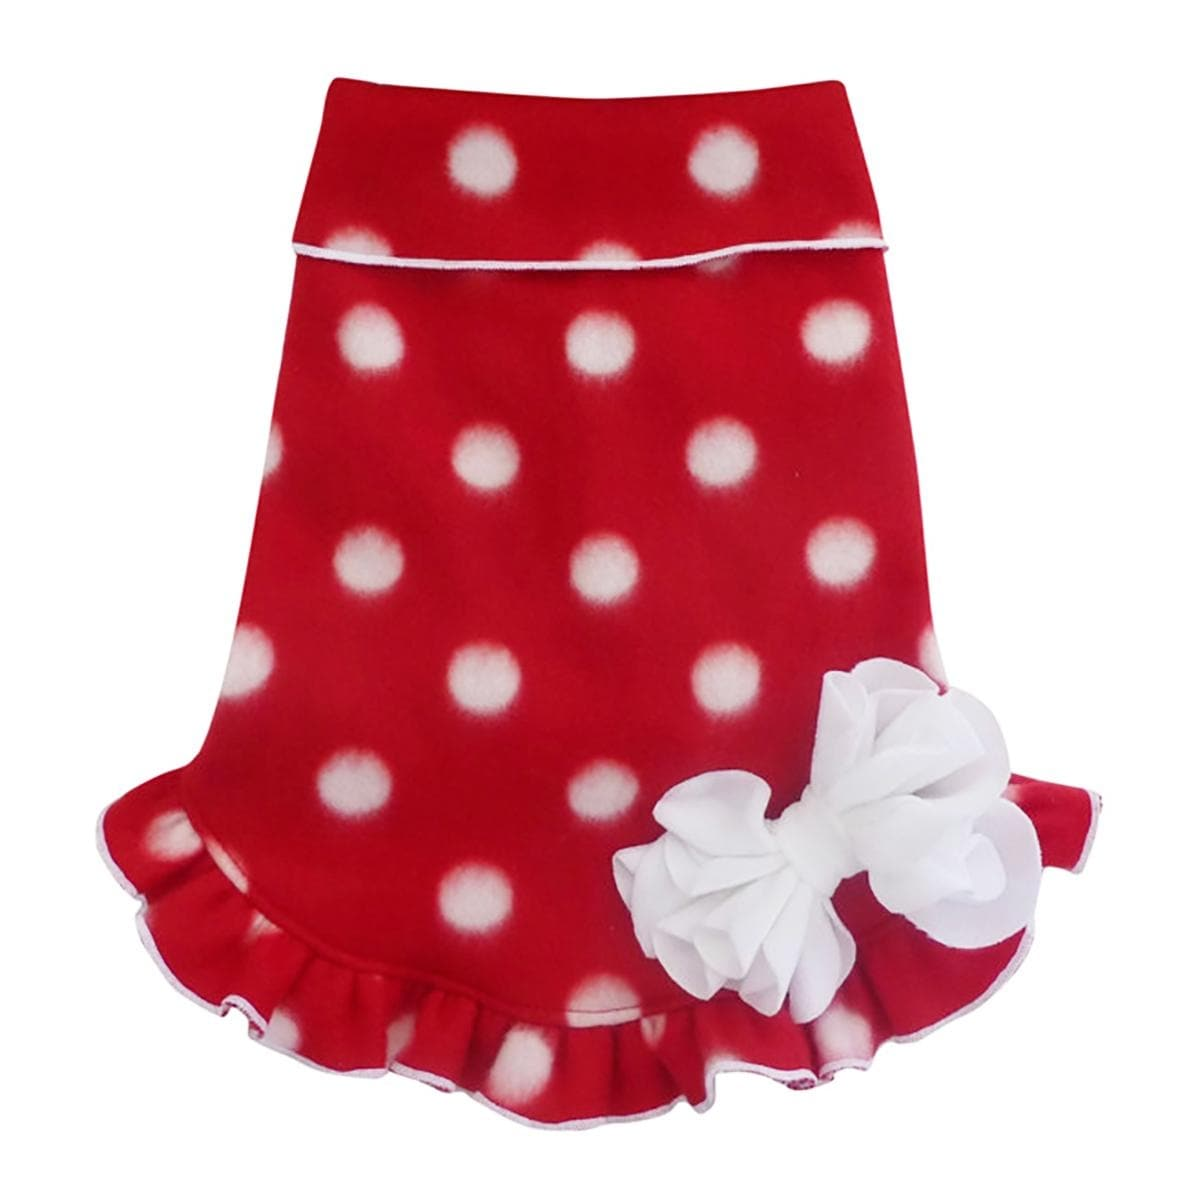 b3561df212 Shop Polka Dot Holiday Pullover Dog Dress - Red and White - Medium - Free  Shipping Today - Overstock - 22667218